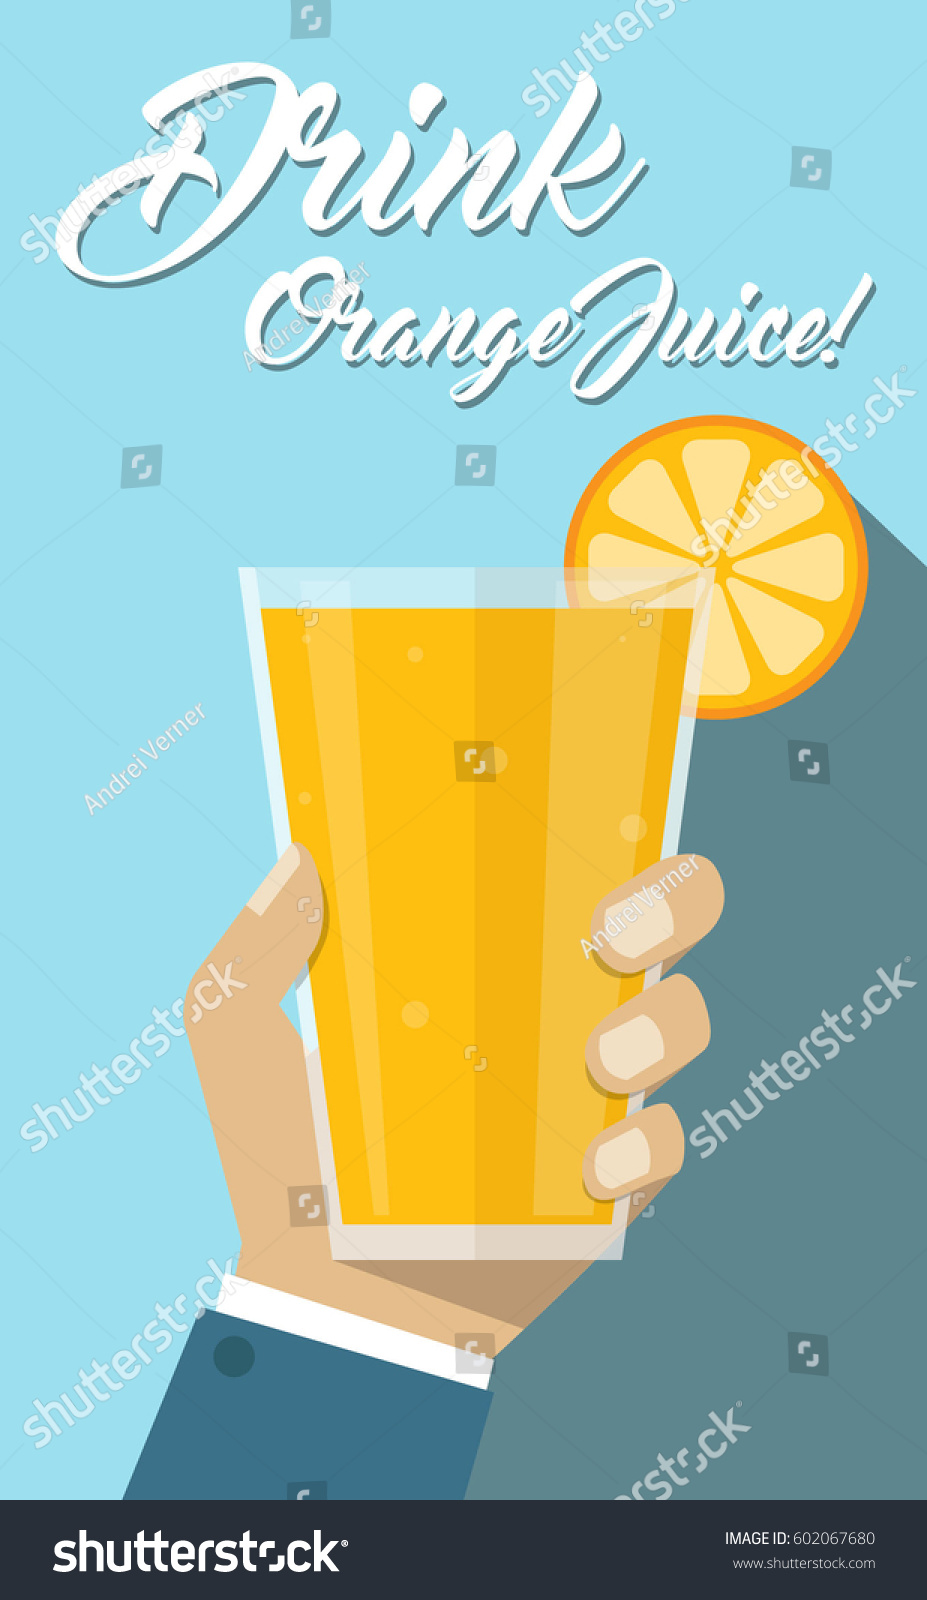 Glass juice cups design - Man Hand Holding Fruit Orange Juice Glass Cup Drink Healthy Beverage Flyer Poster Simple